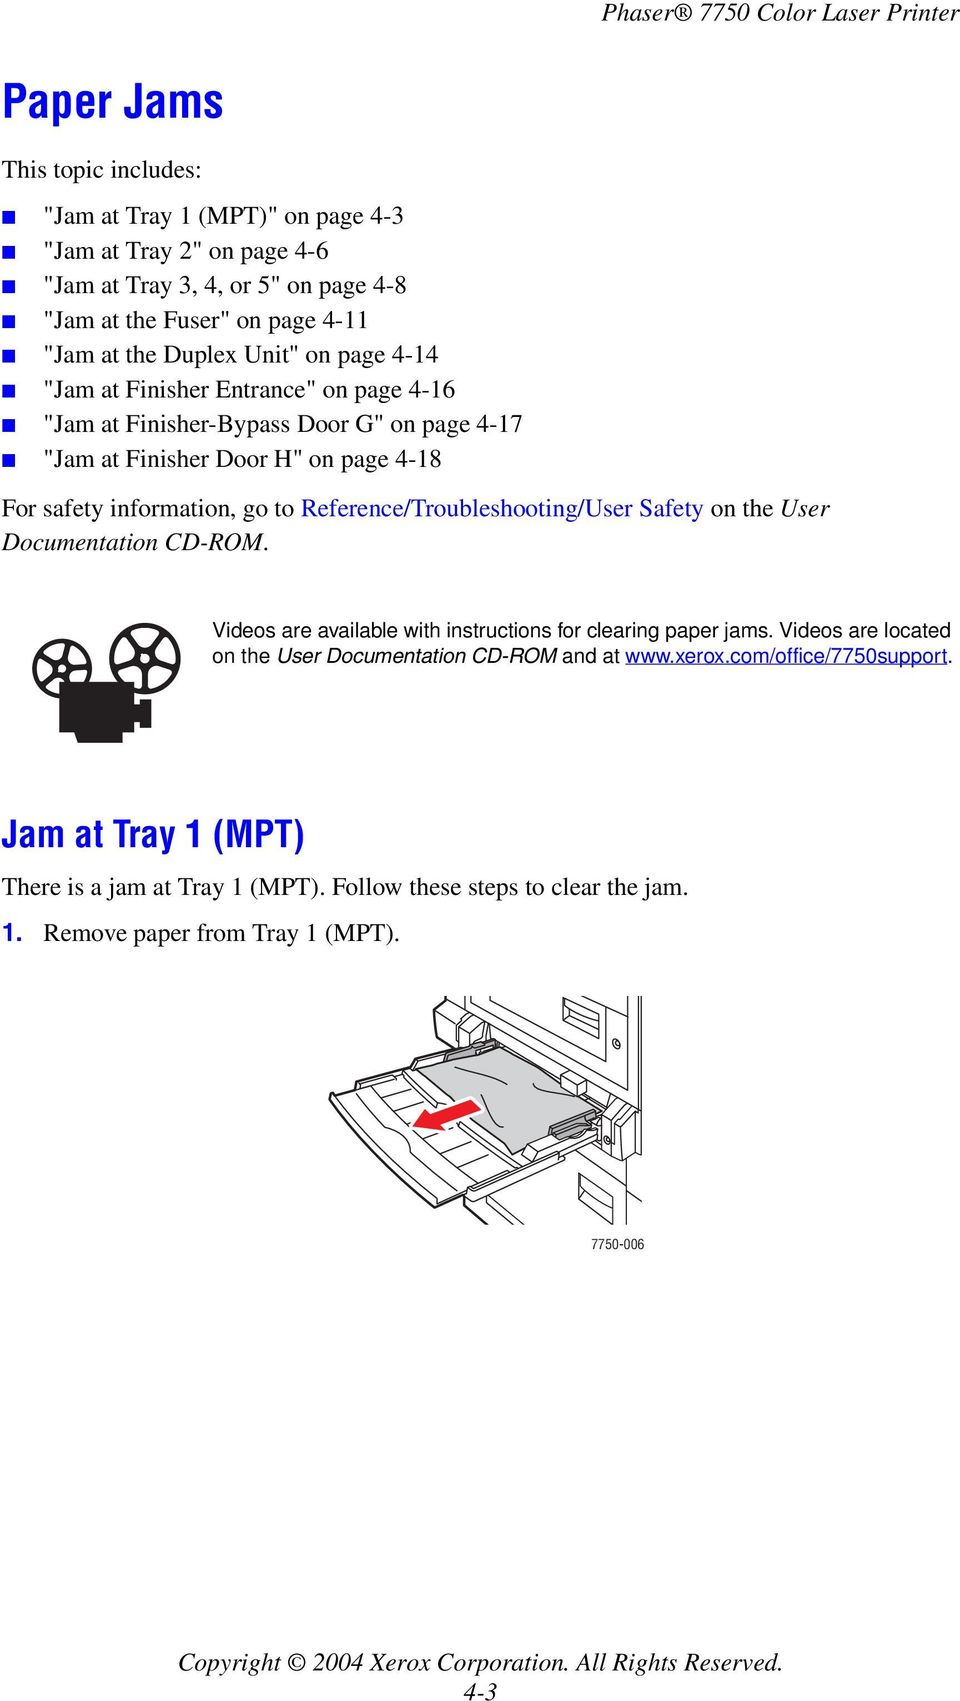 There is a jam at Tray 1 (MPT)  Follow these steps to clear the jam